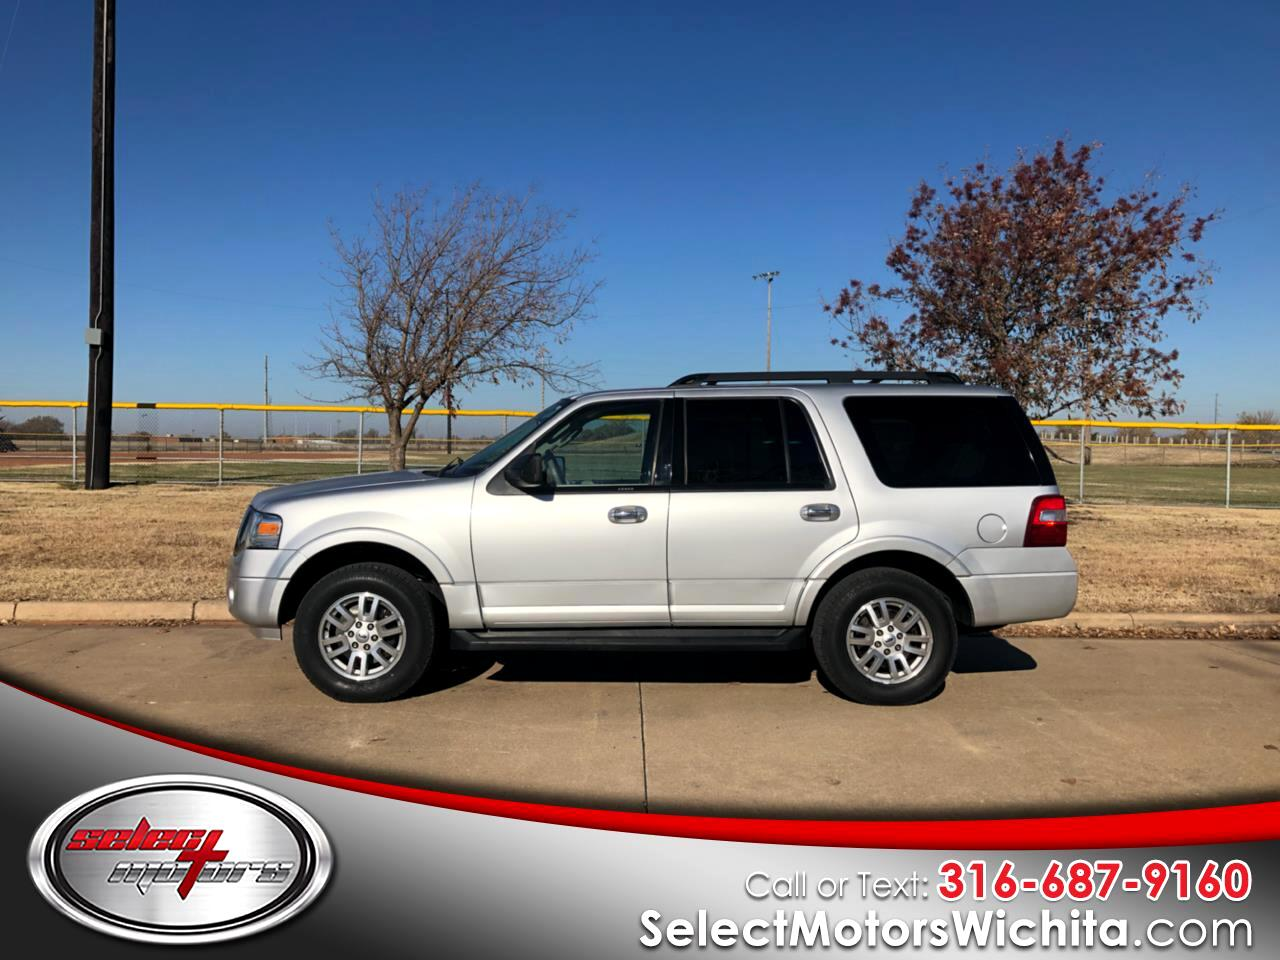 2011 Ford Expedition 2WD 4dr XLT